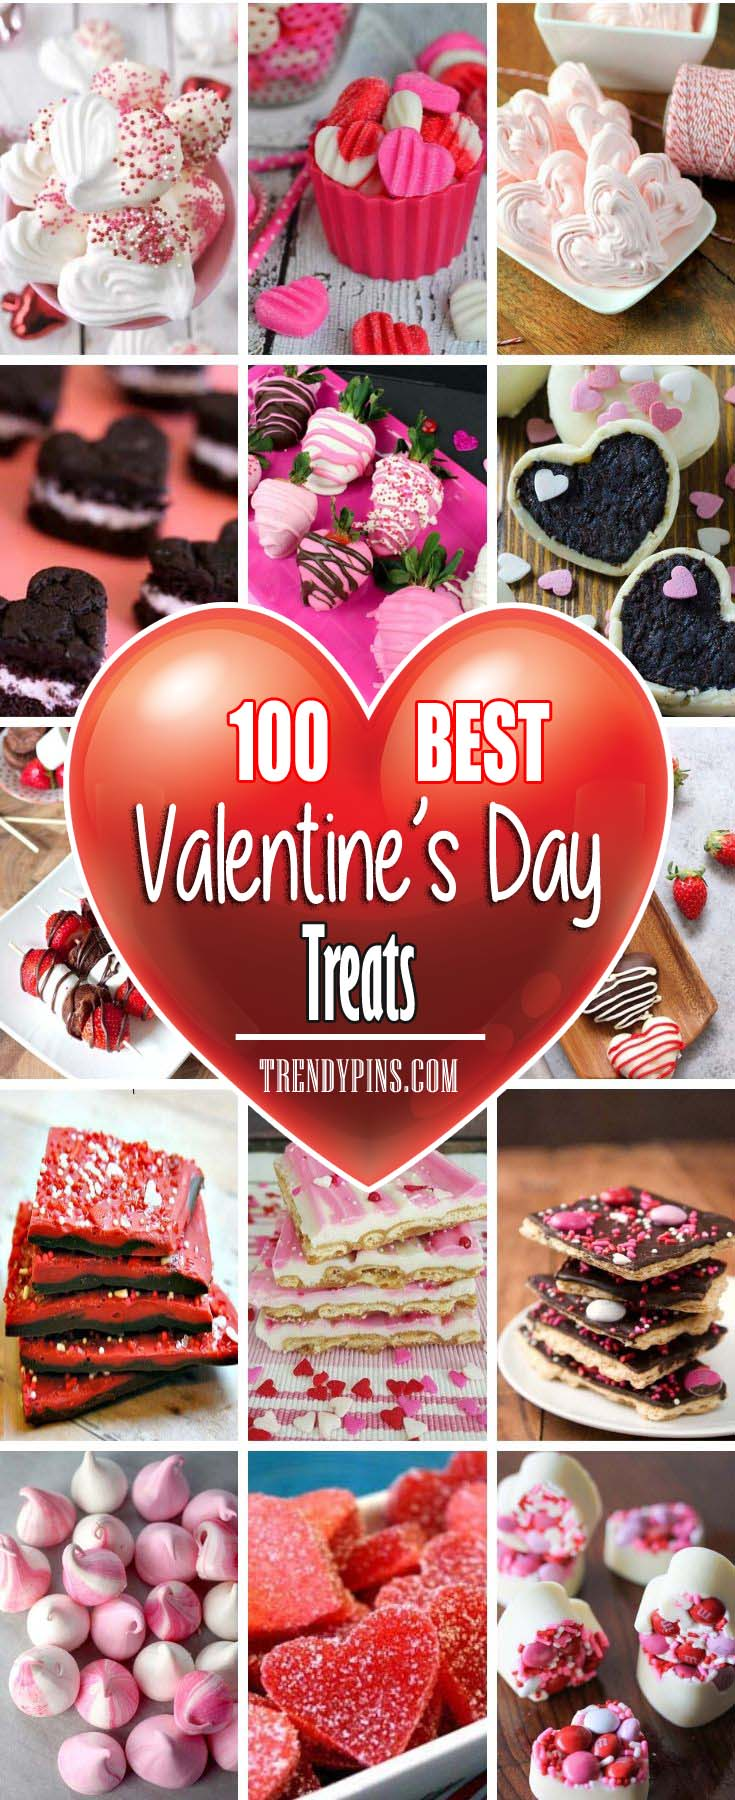 Try any of these chocolate, strawberry or marshmallow filled treats #Valentine's Day #recipes #treats #trendypins